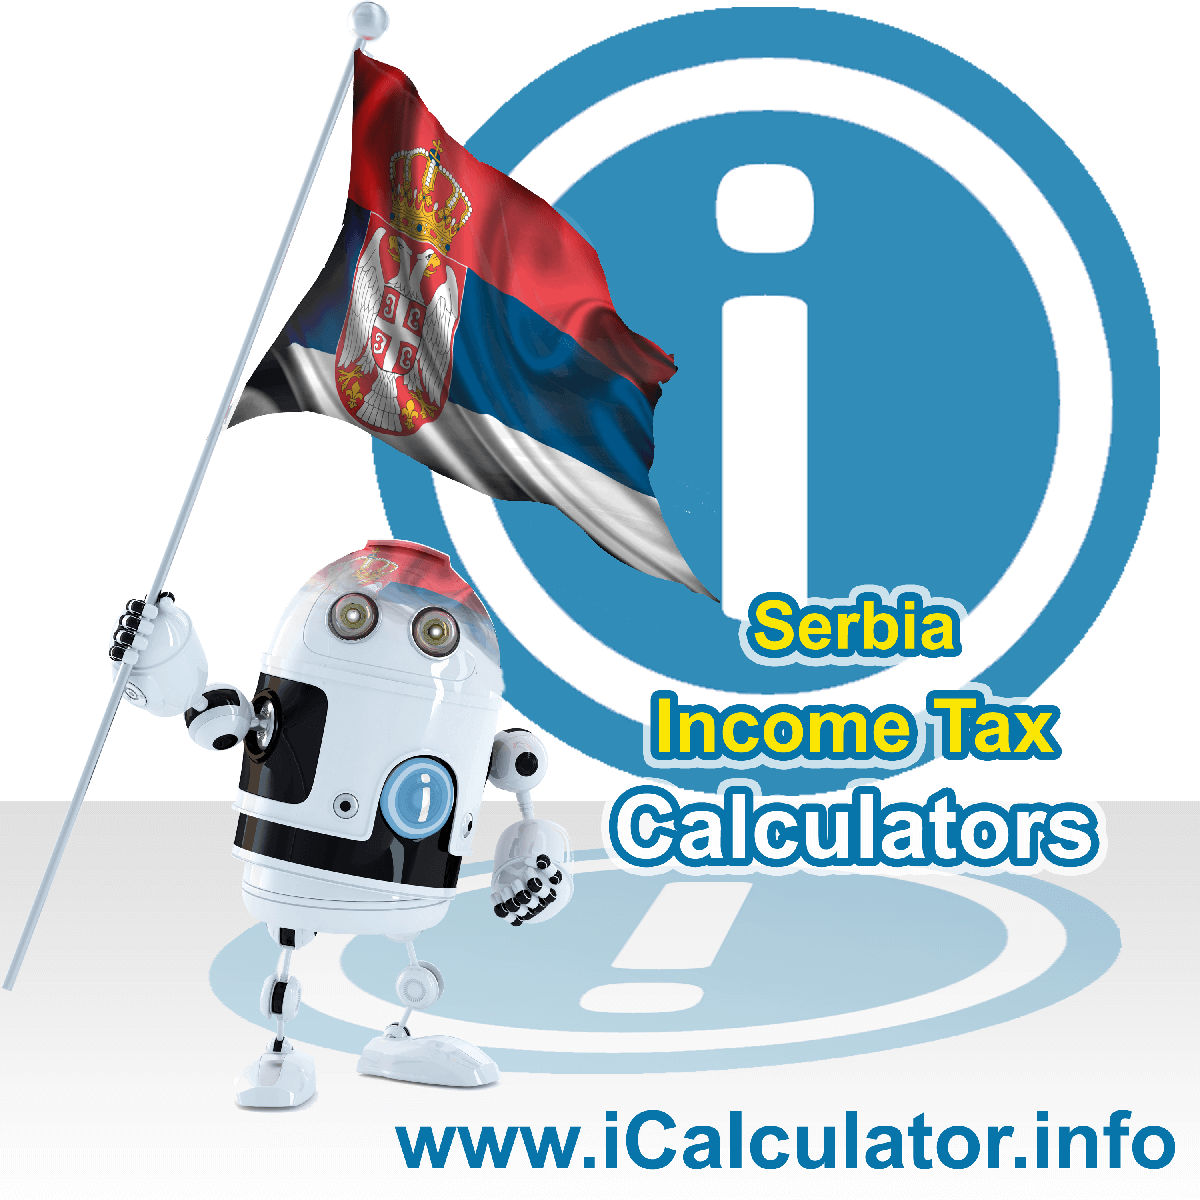 Serbia Income Tax Calculator. This image shows a new employer in Serbia calculating the annual payroll costs based on multiple payroll payments in one year in Serbia using the Serbia income tax calculator to understand their payroll costs in Serbia in 2020